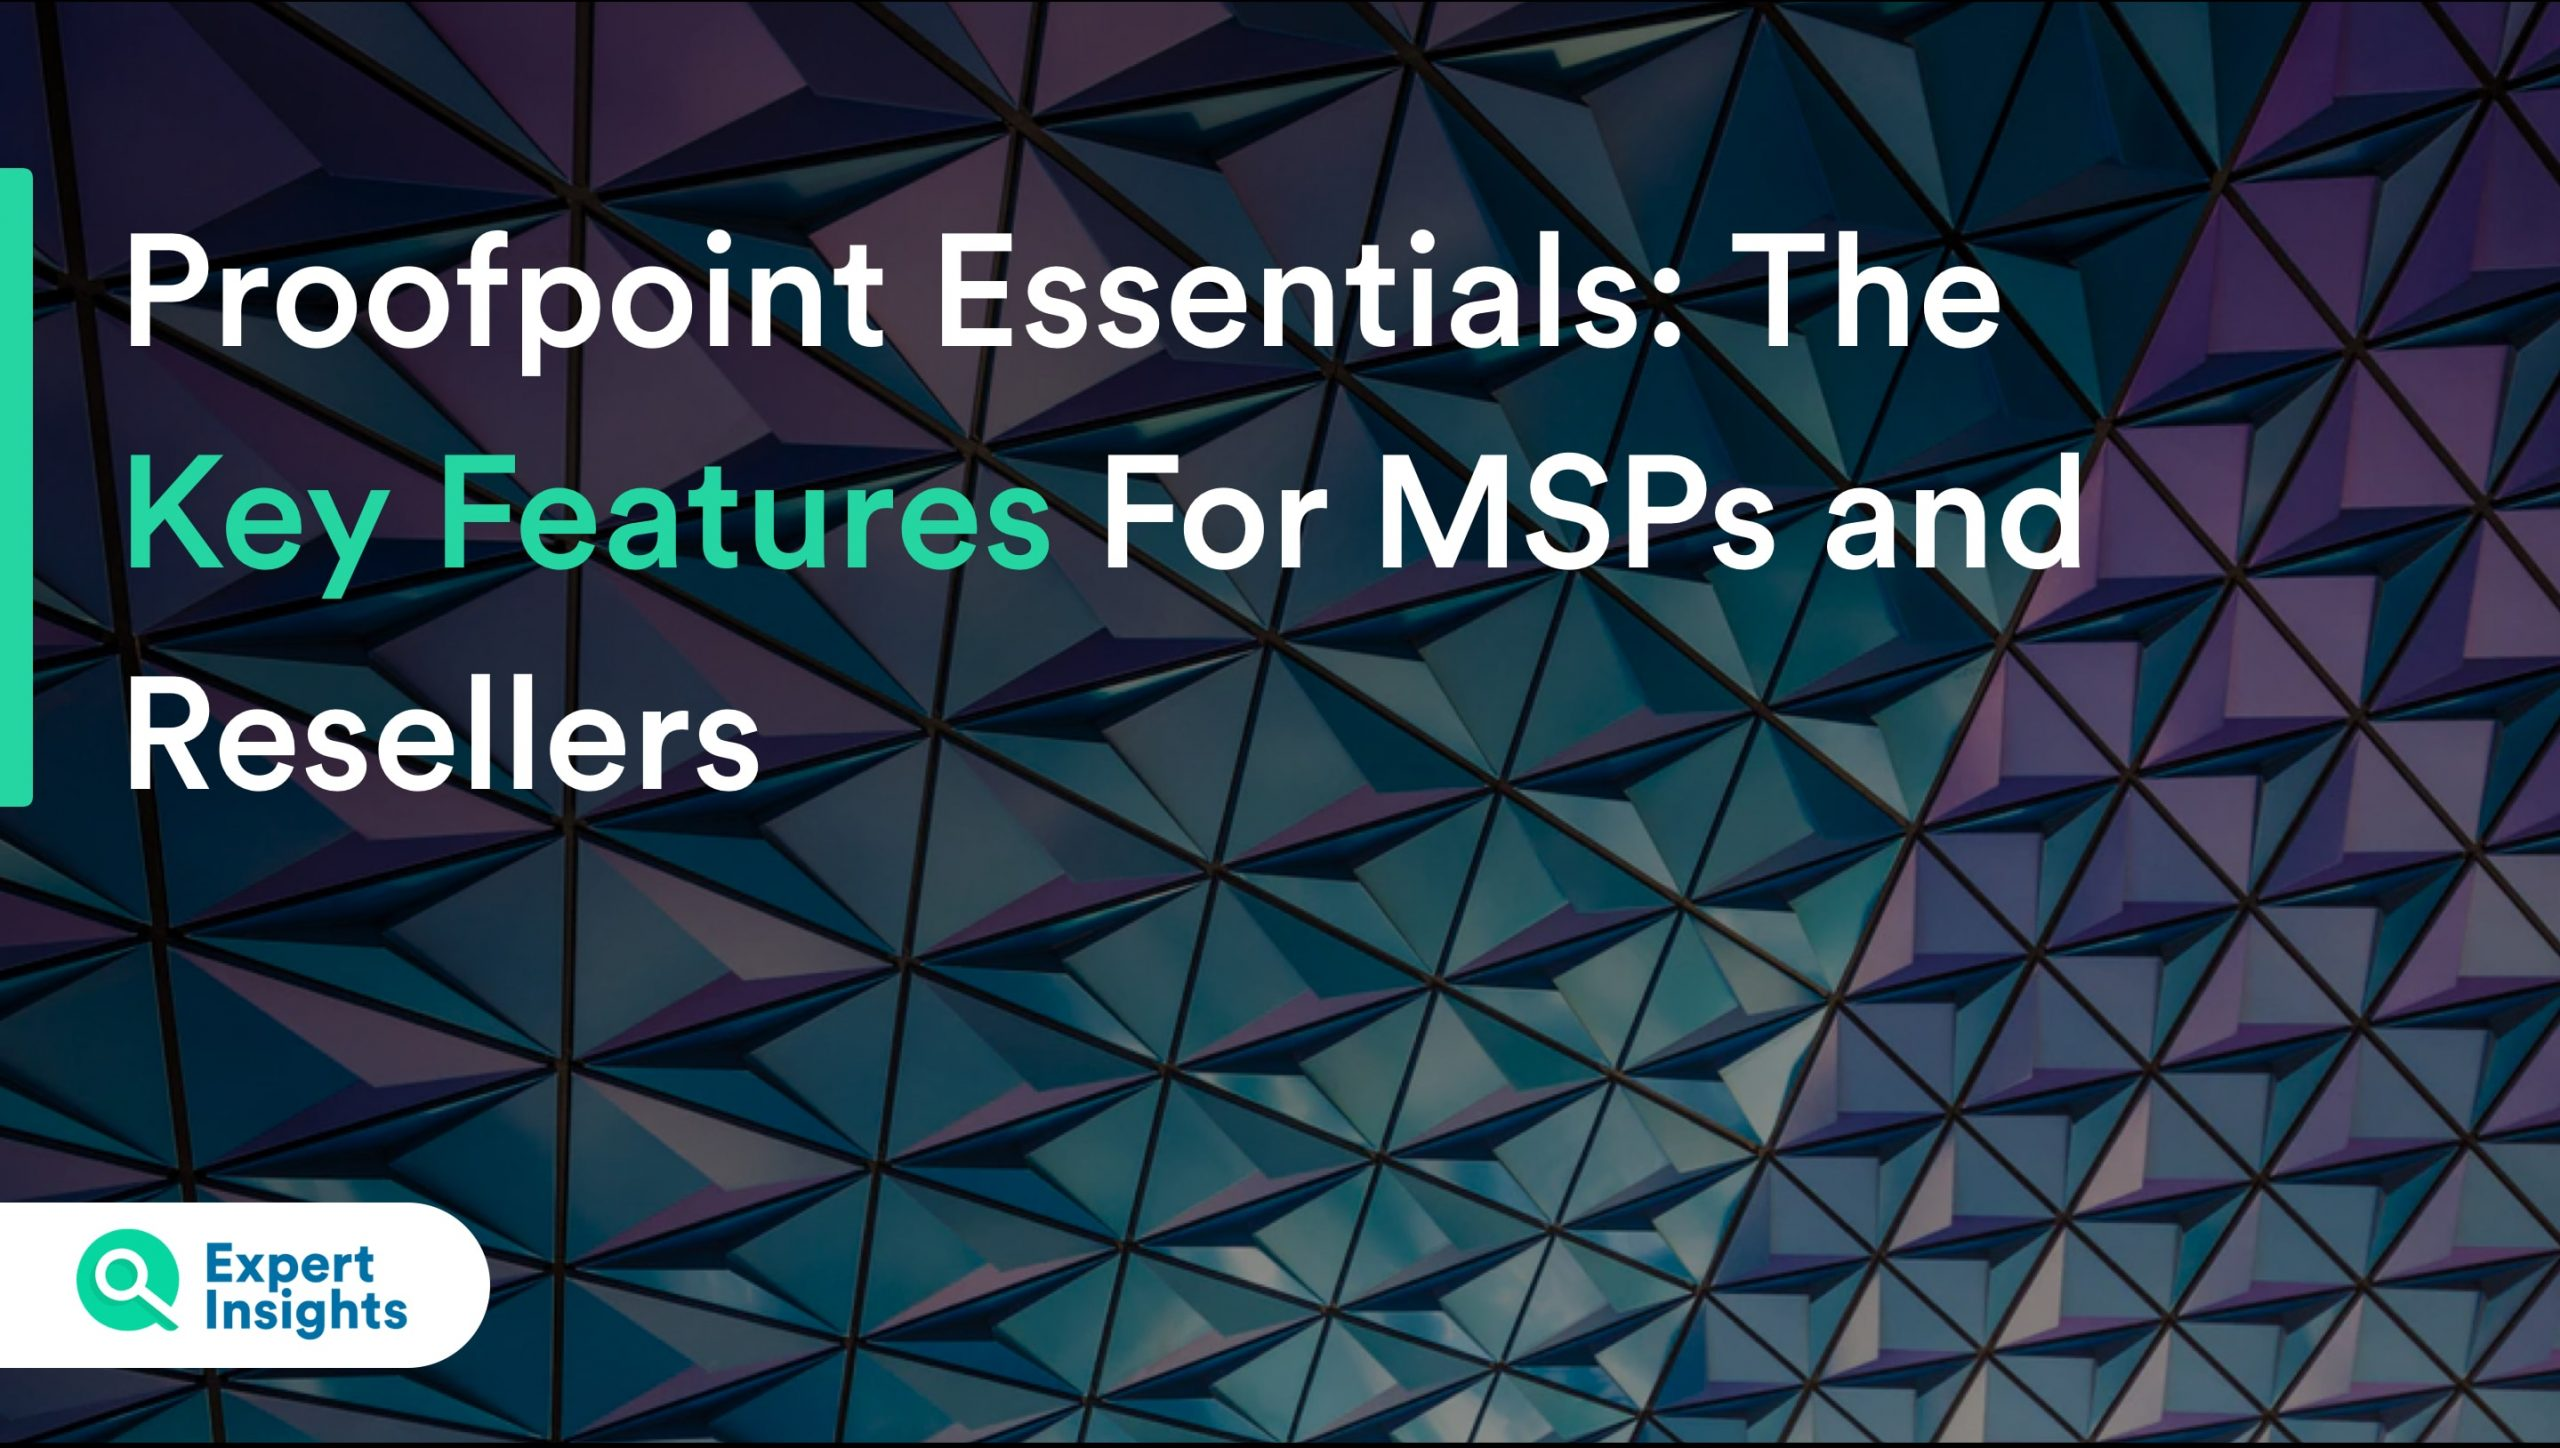 proofpoint essentials for msps